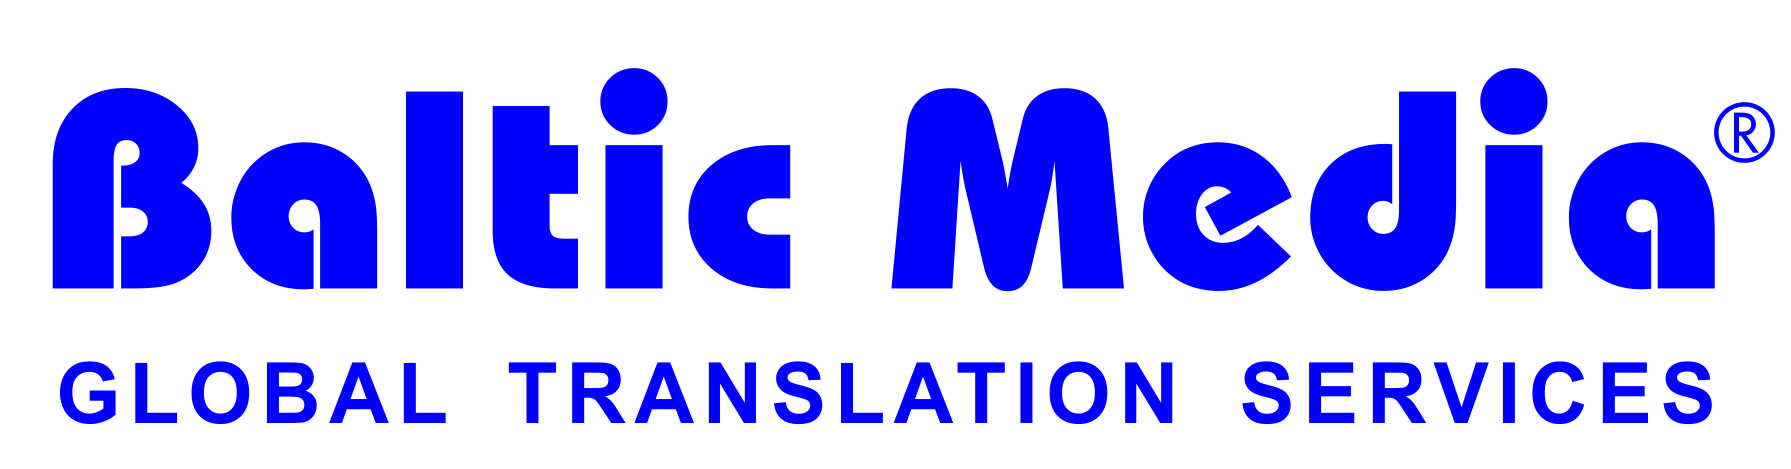 Agence de traduction scandinave et balte Baltic Media | Services de traduction en Europe du Nord — une entreprise de traduction nordique et balte certifiée ISO